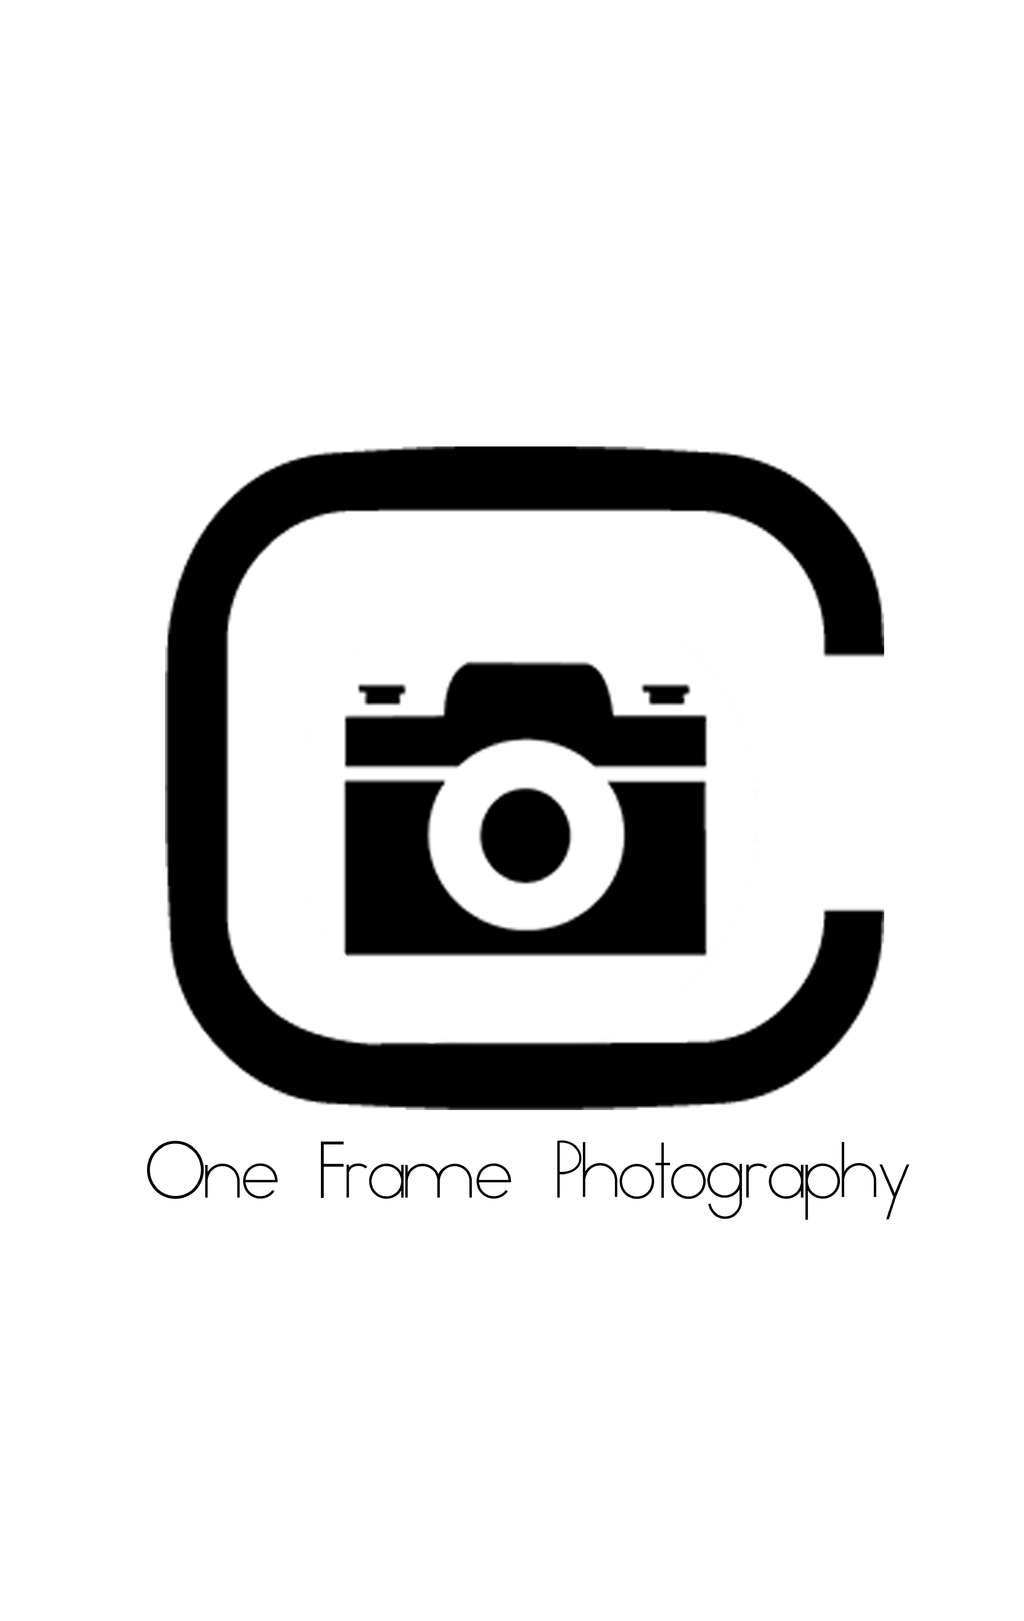 one frame photography logowatermark by